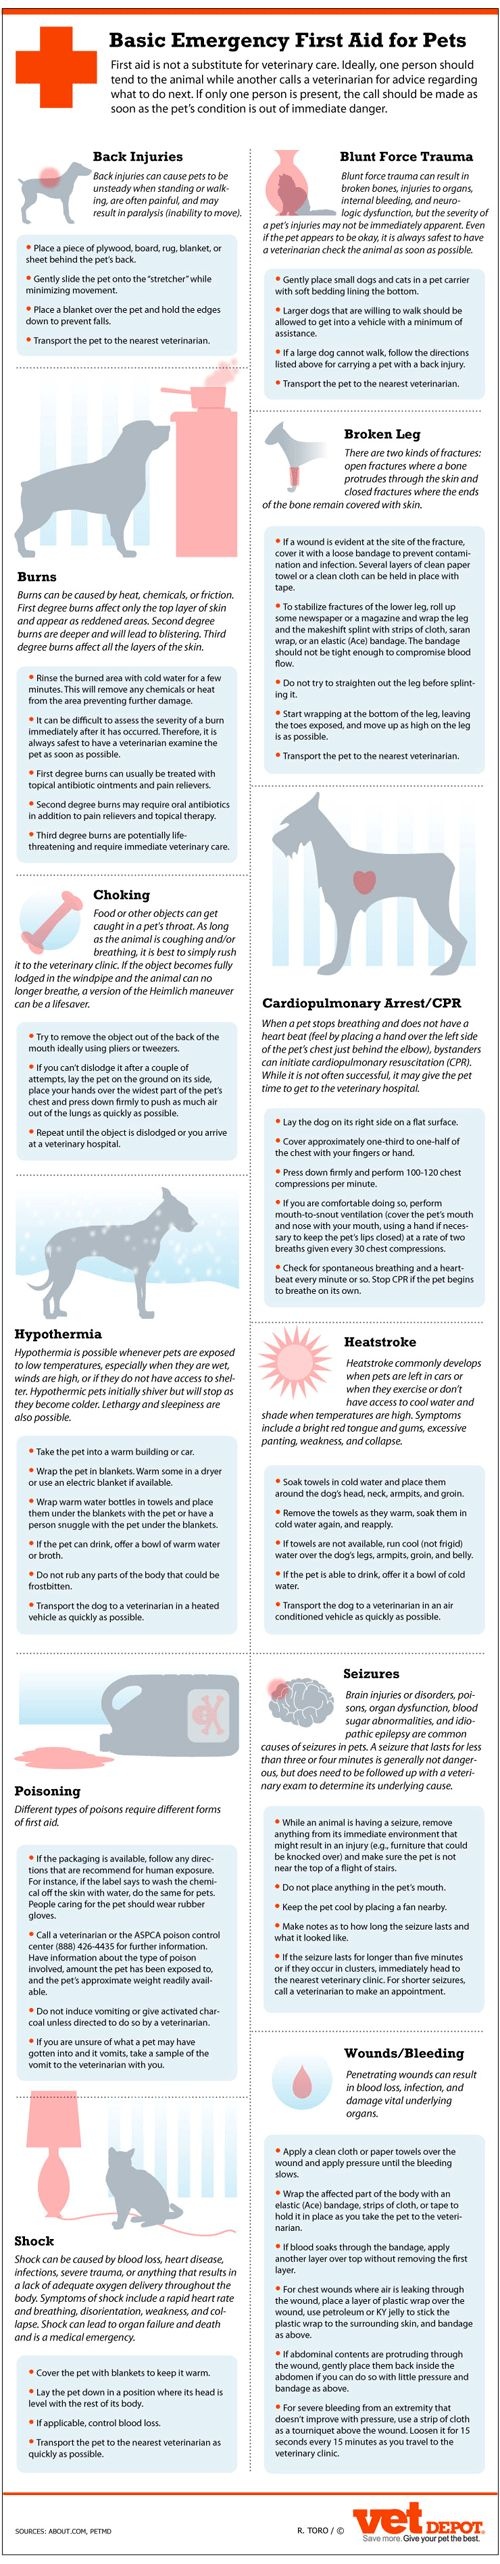 So sad to think about but good to have on hand..Basic Emergency First Aid for Pets via vetdepot